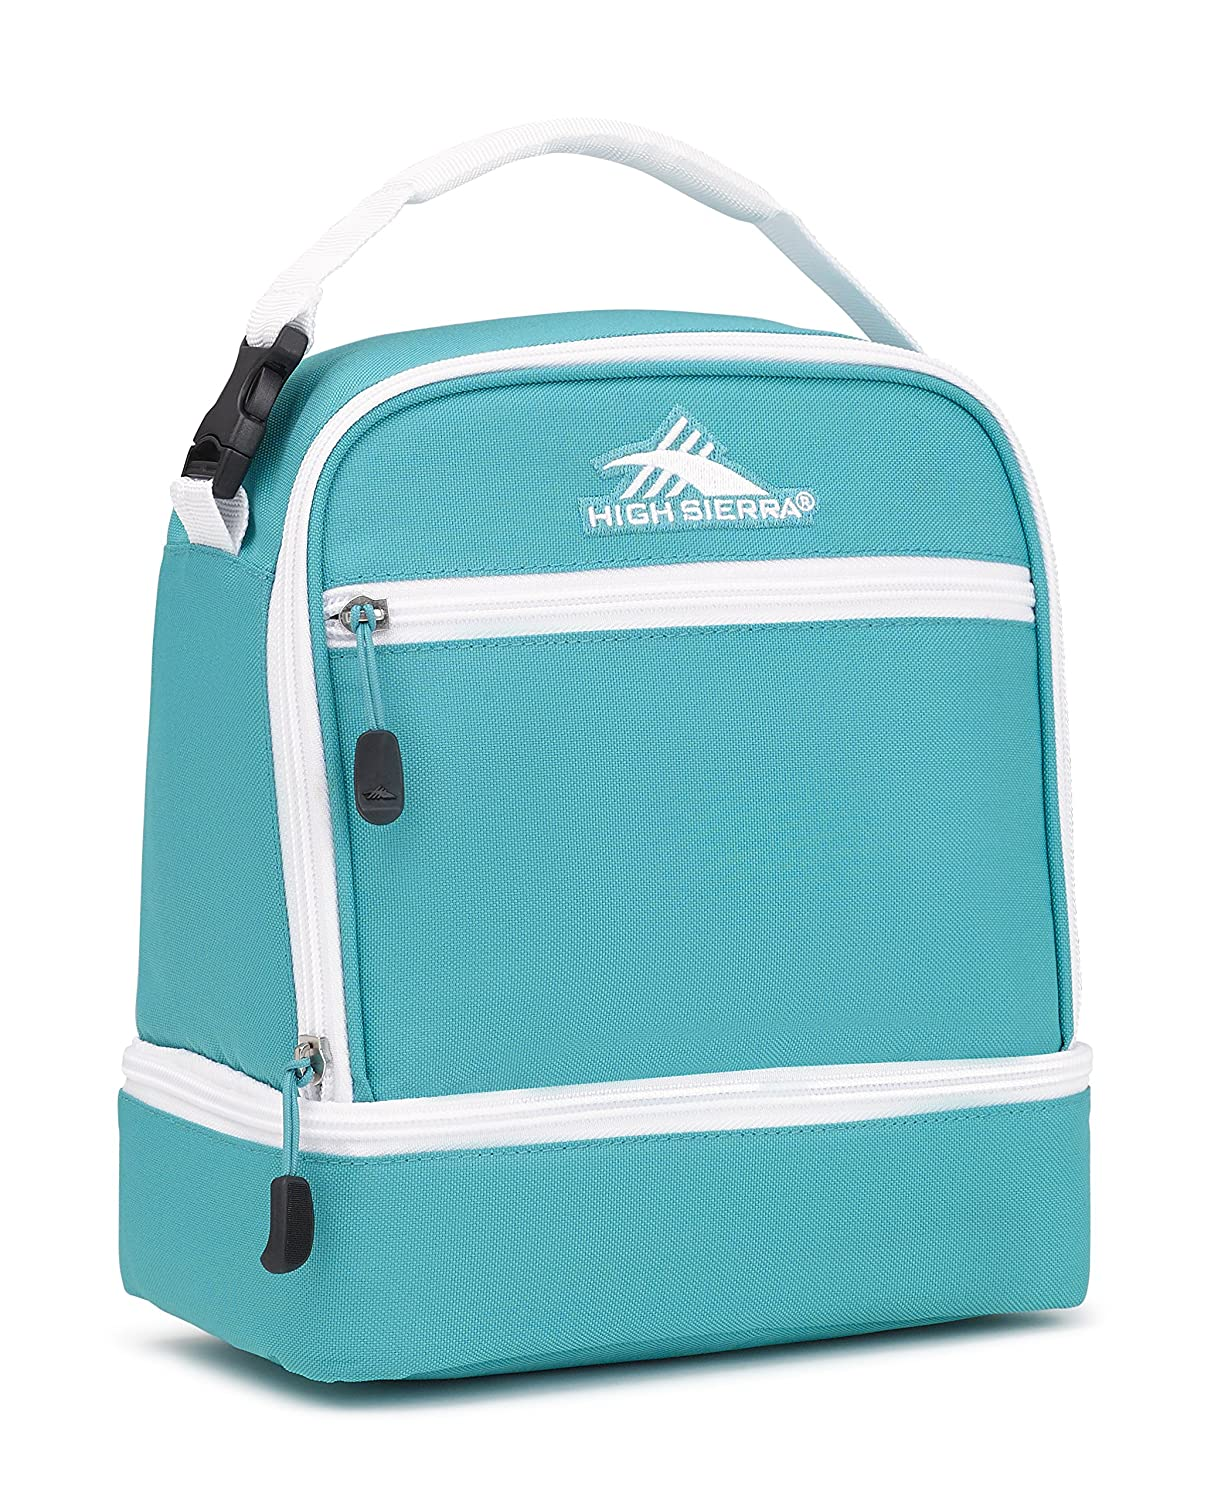 High Sierra Stacked Compartment Lunch Bag Aquamarine/White High Sierra Sport Company 74714-5403